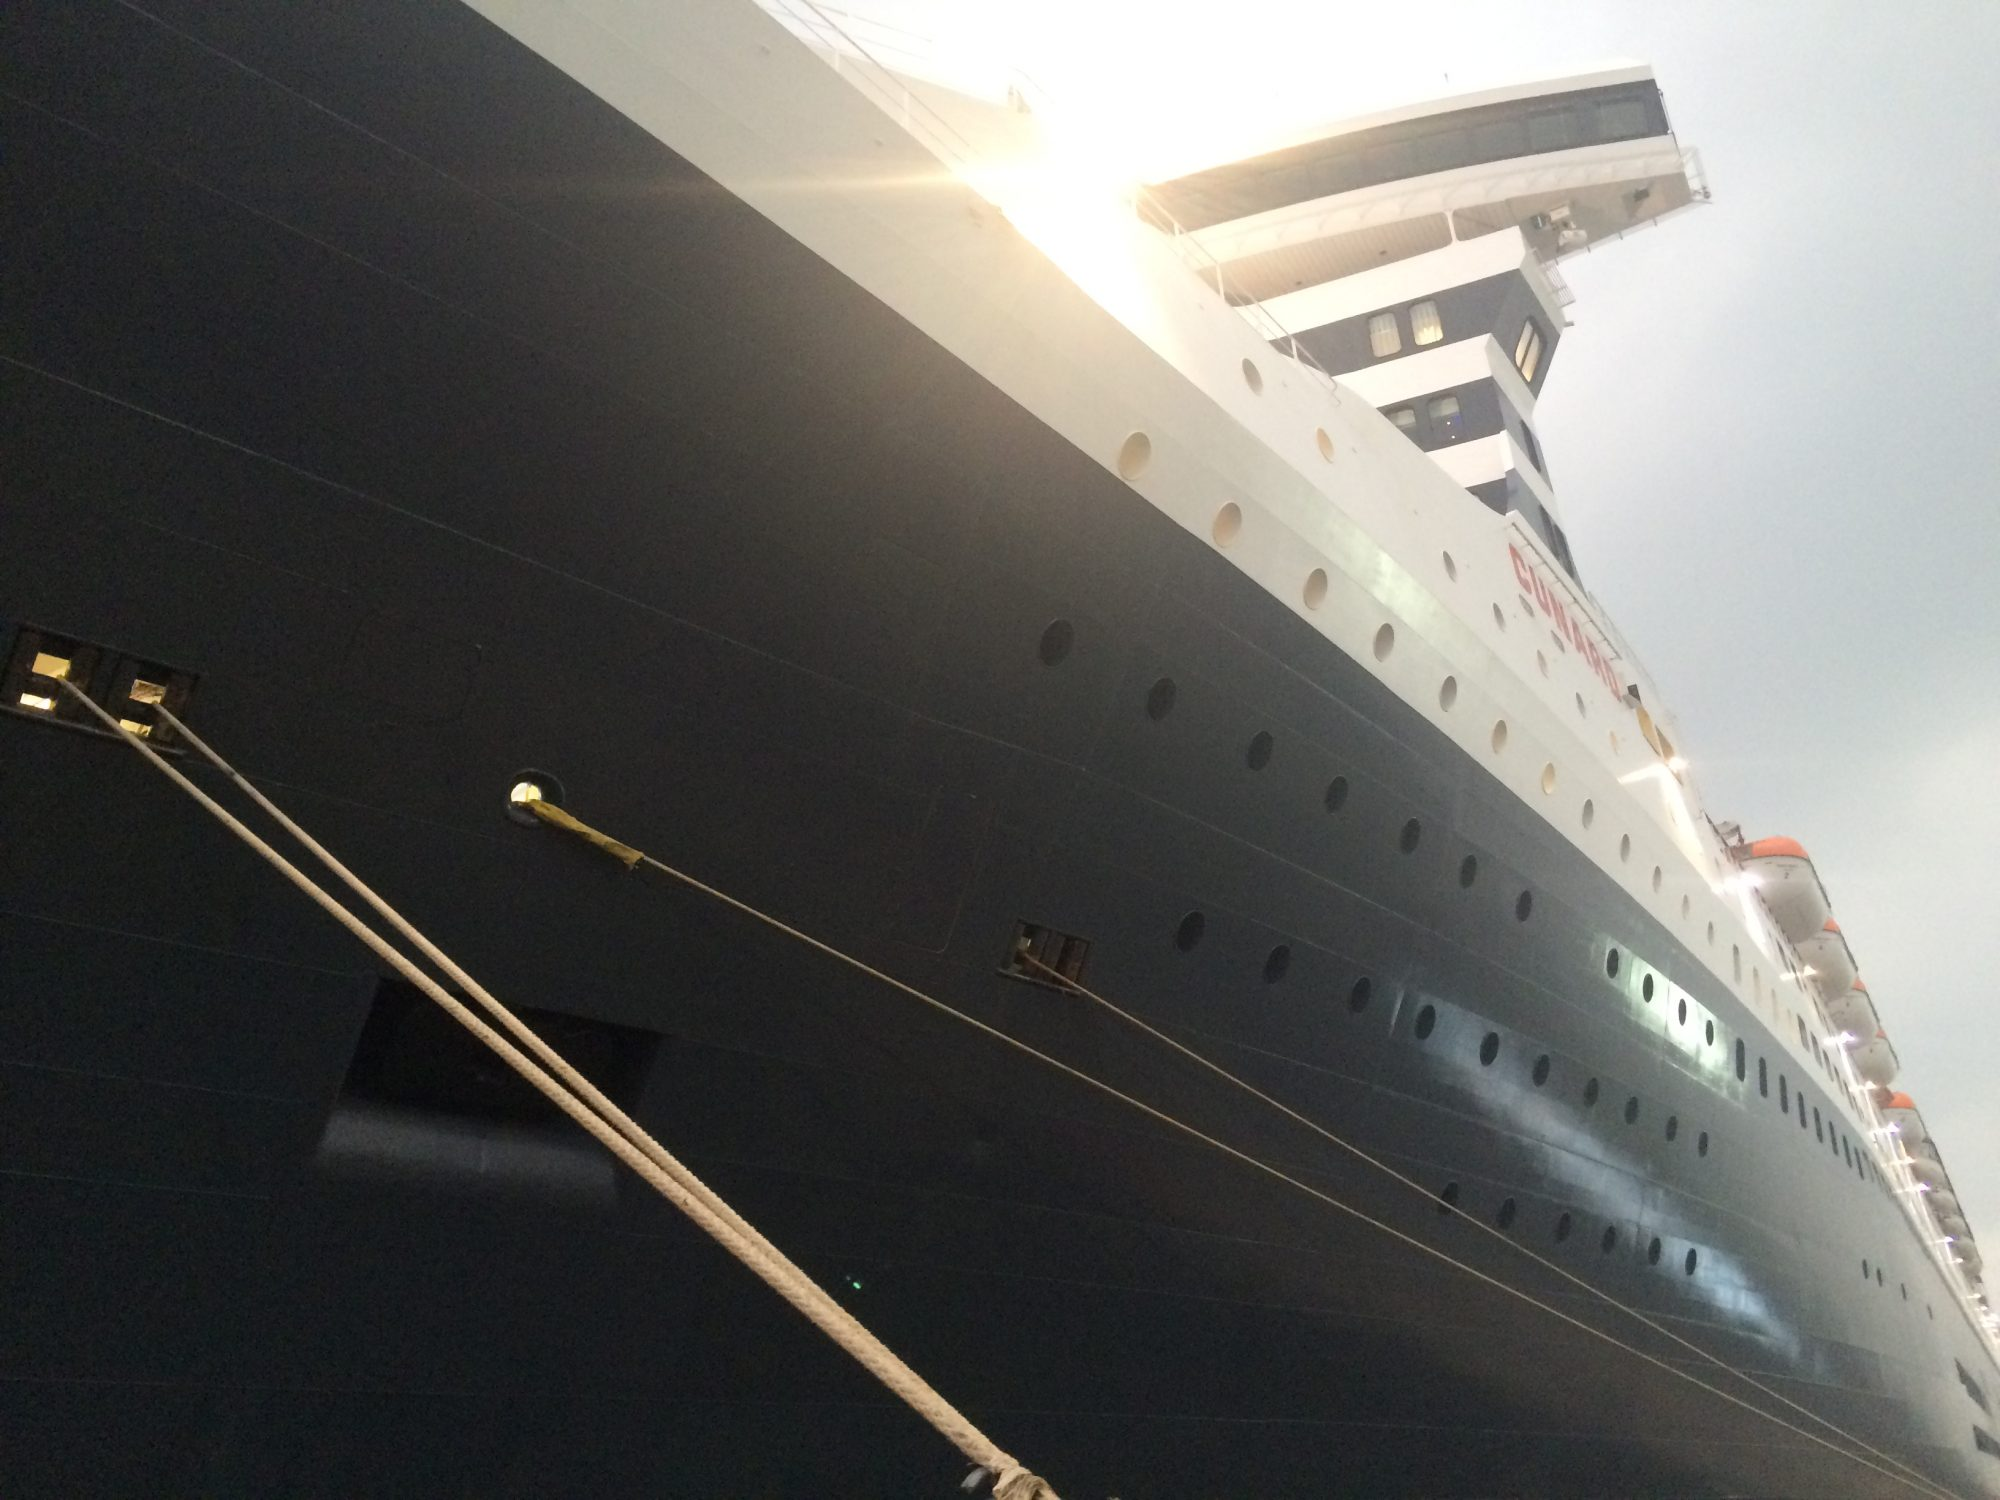 Cruising in style – Queen Mary 2